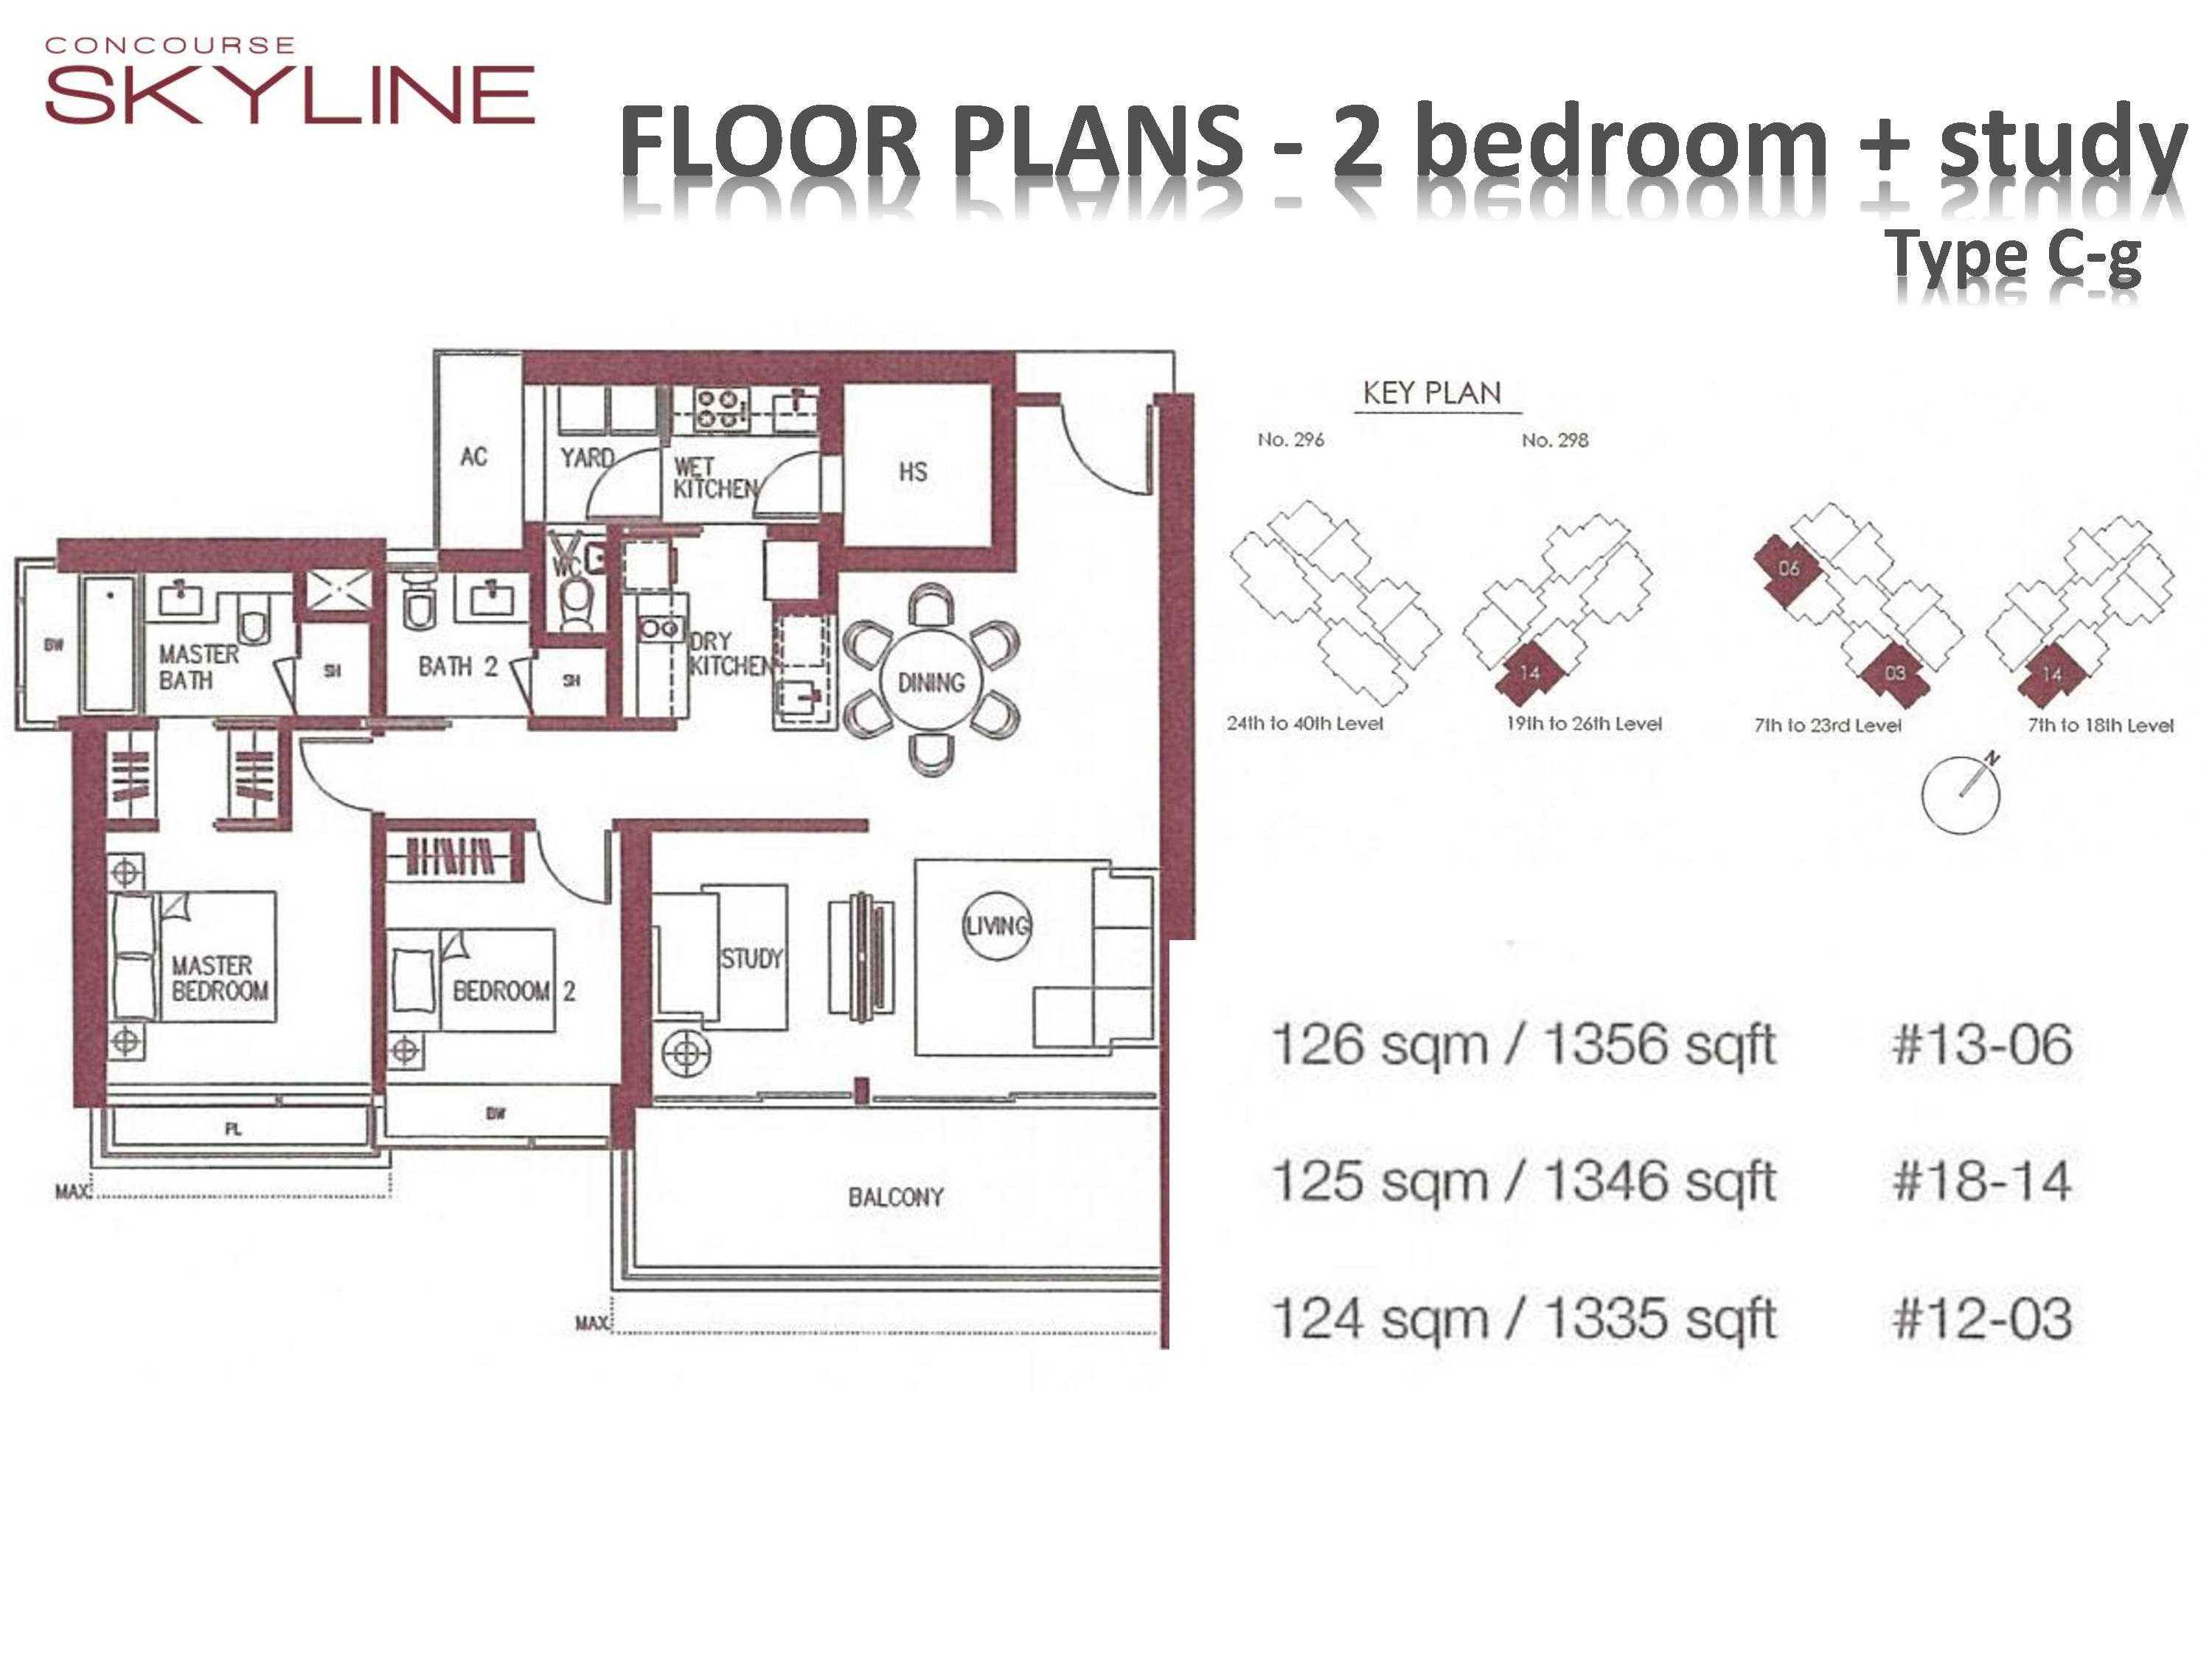 Concourse Skyline 2 Bedroom + Study Type C-g Floor Plans